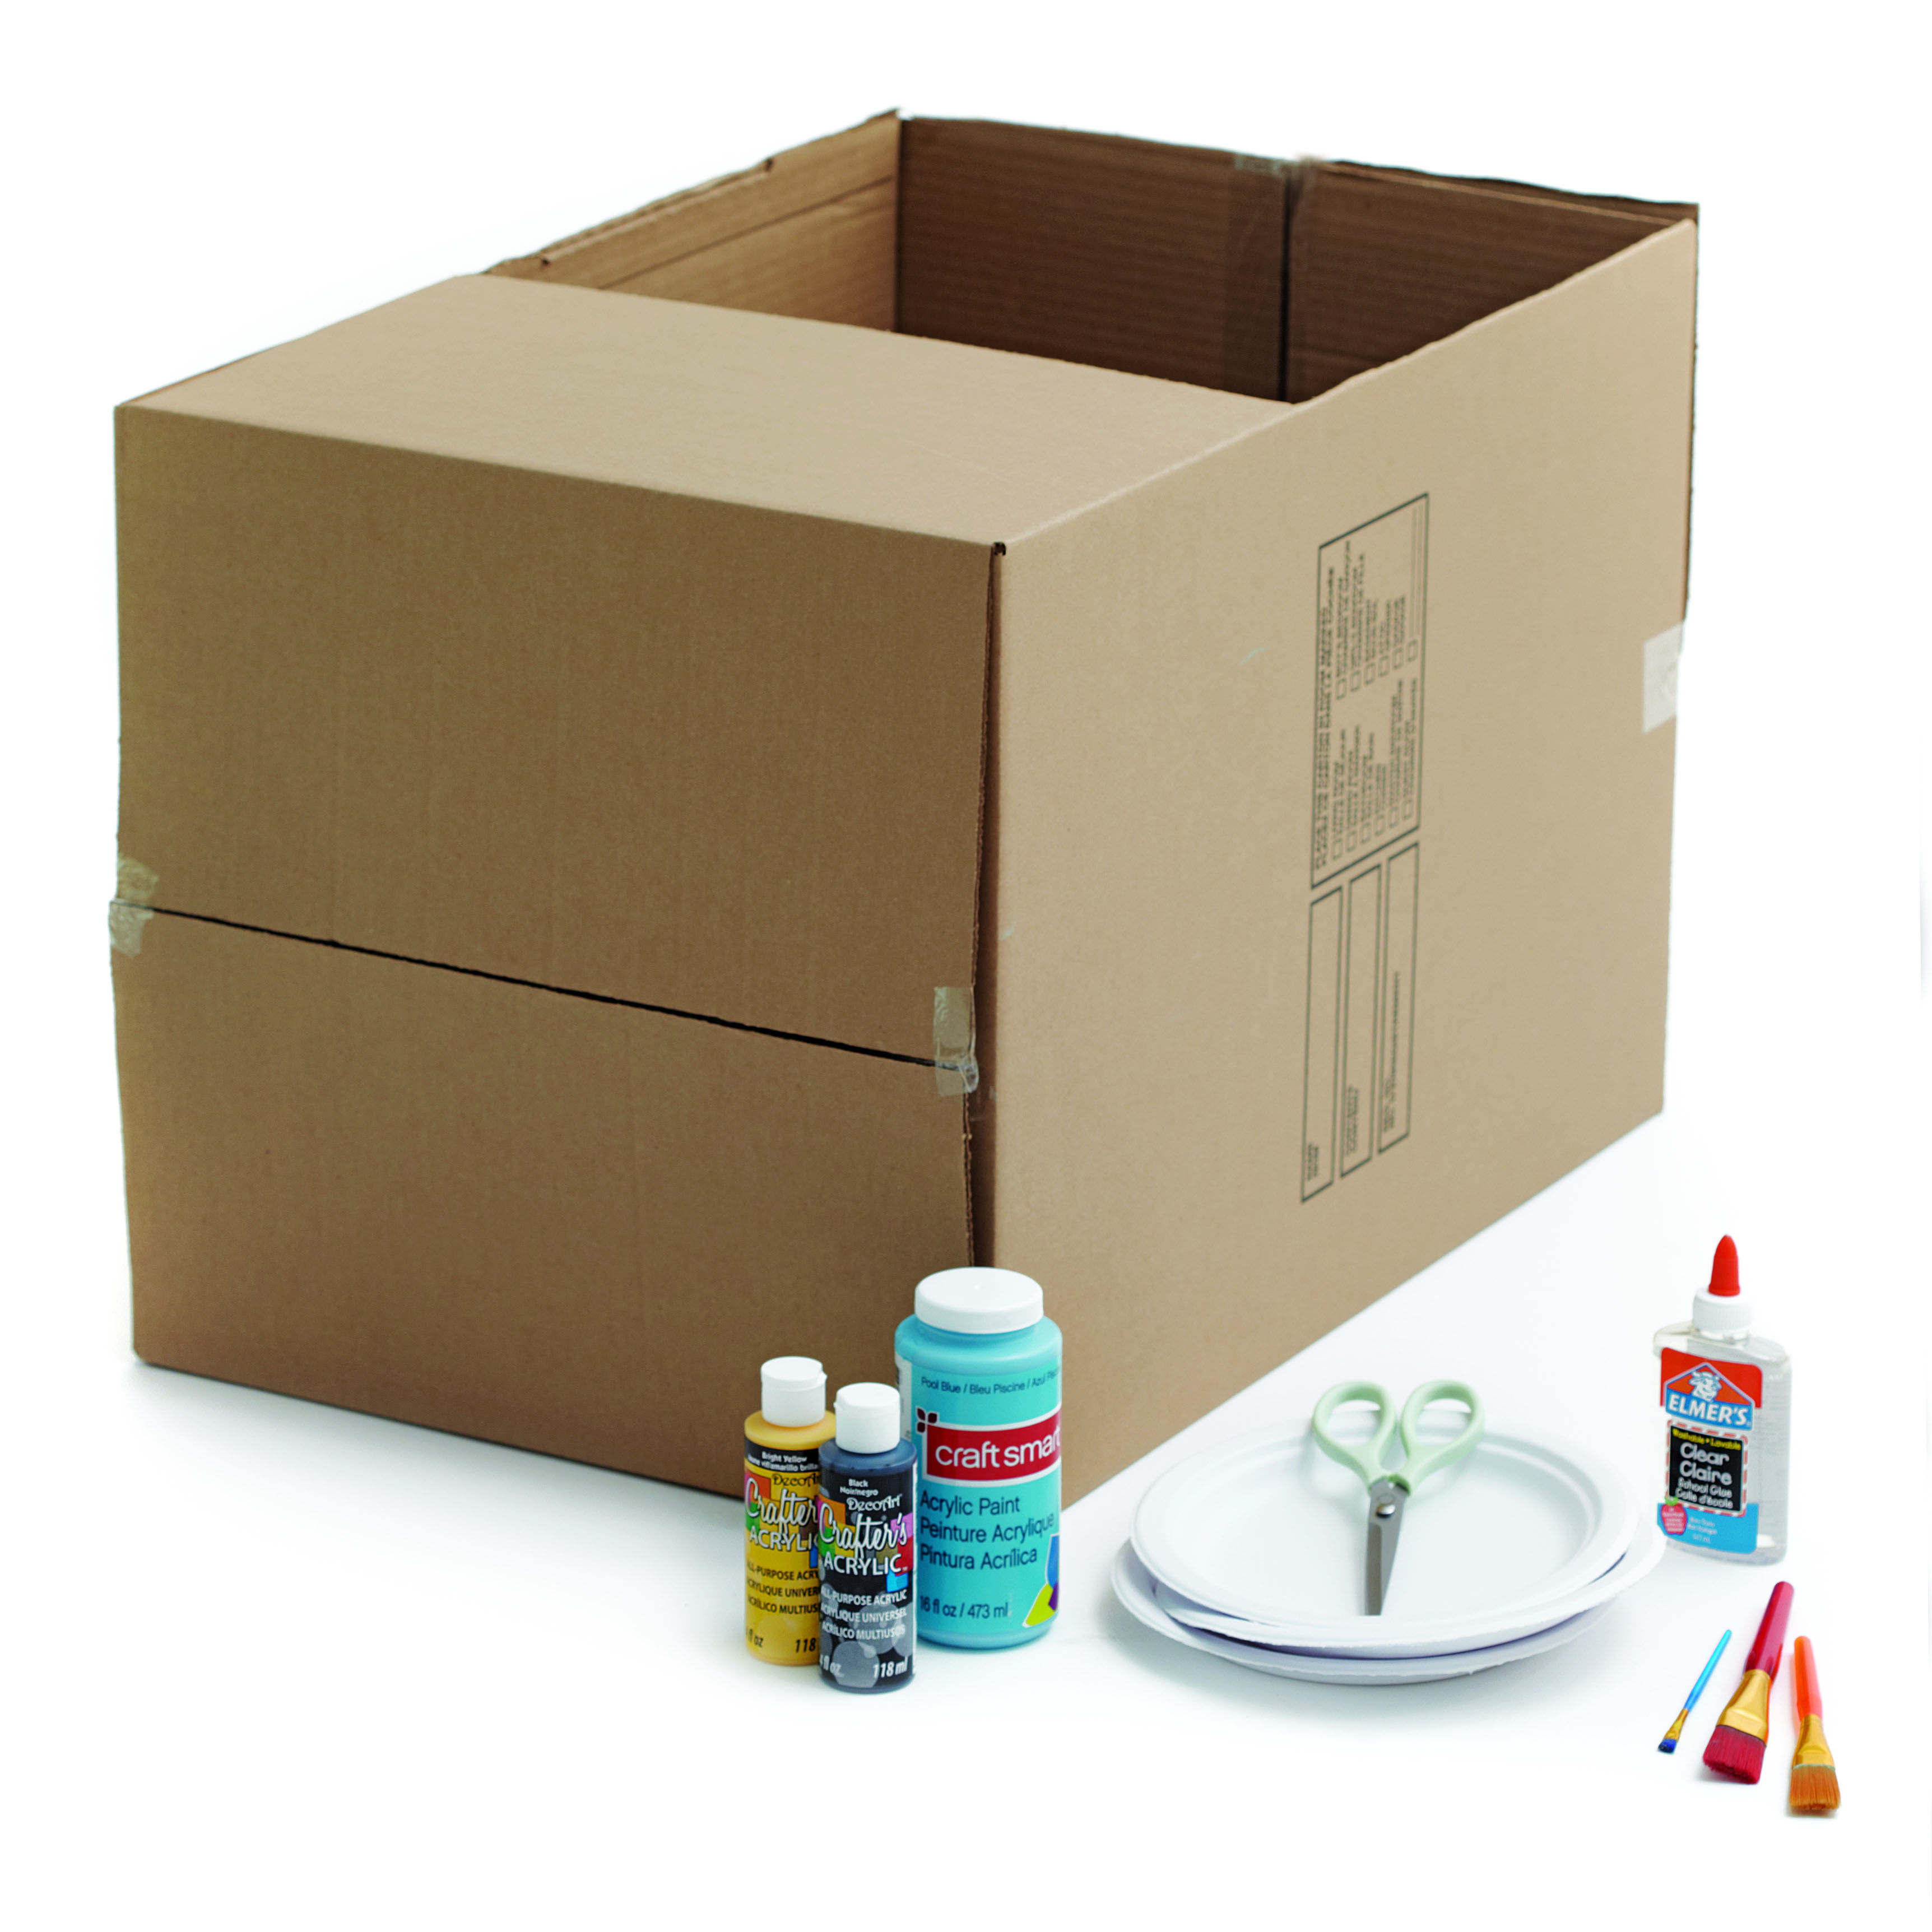 Craft how to make a box car craft cardboard car and for How to build box steps